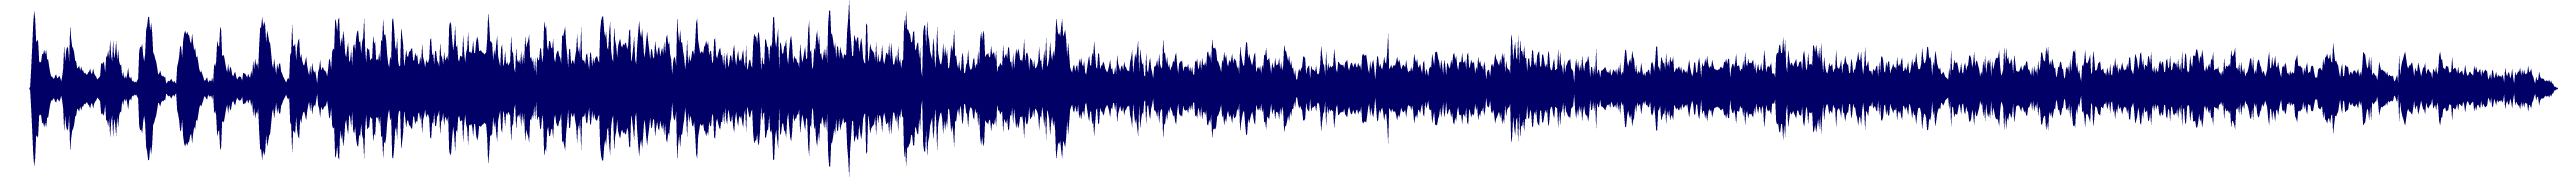 waveform of track #66360